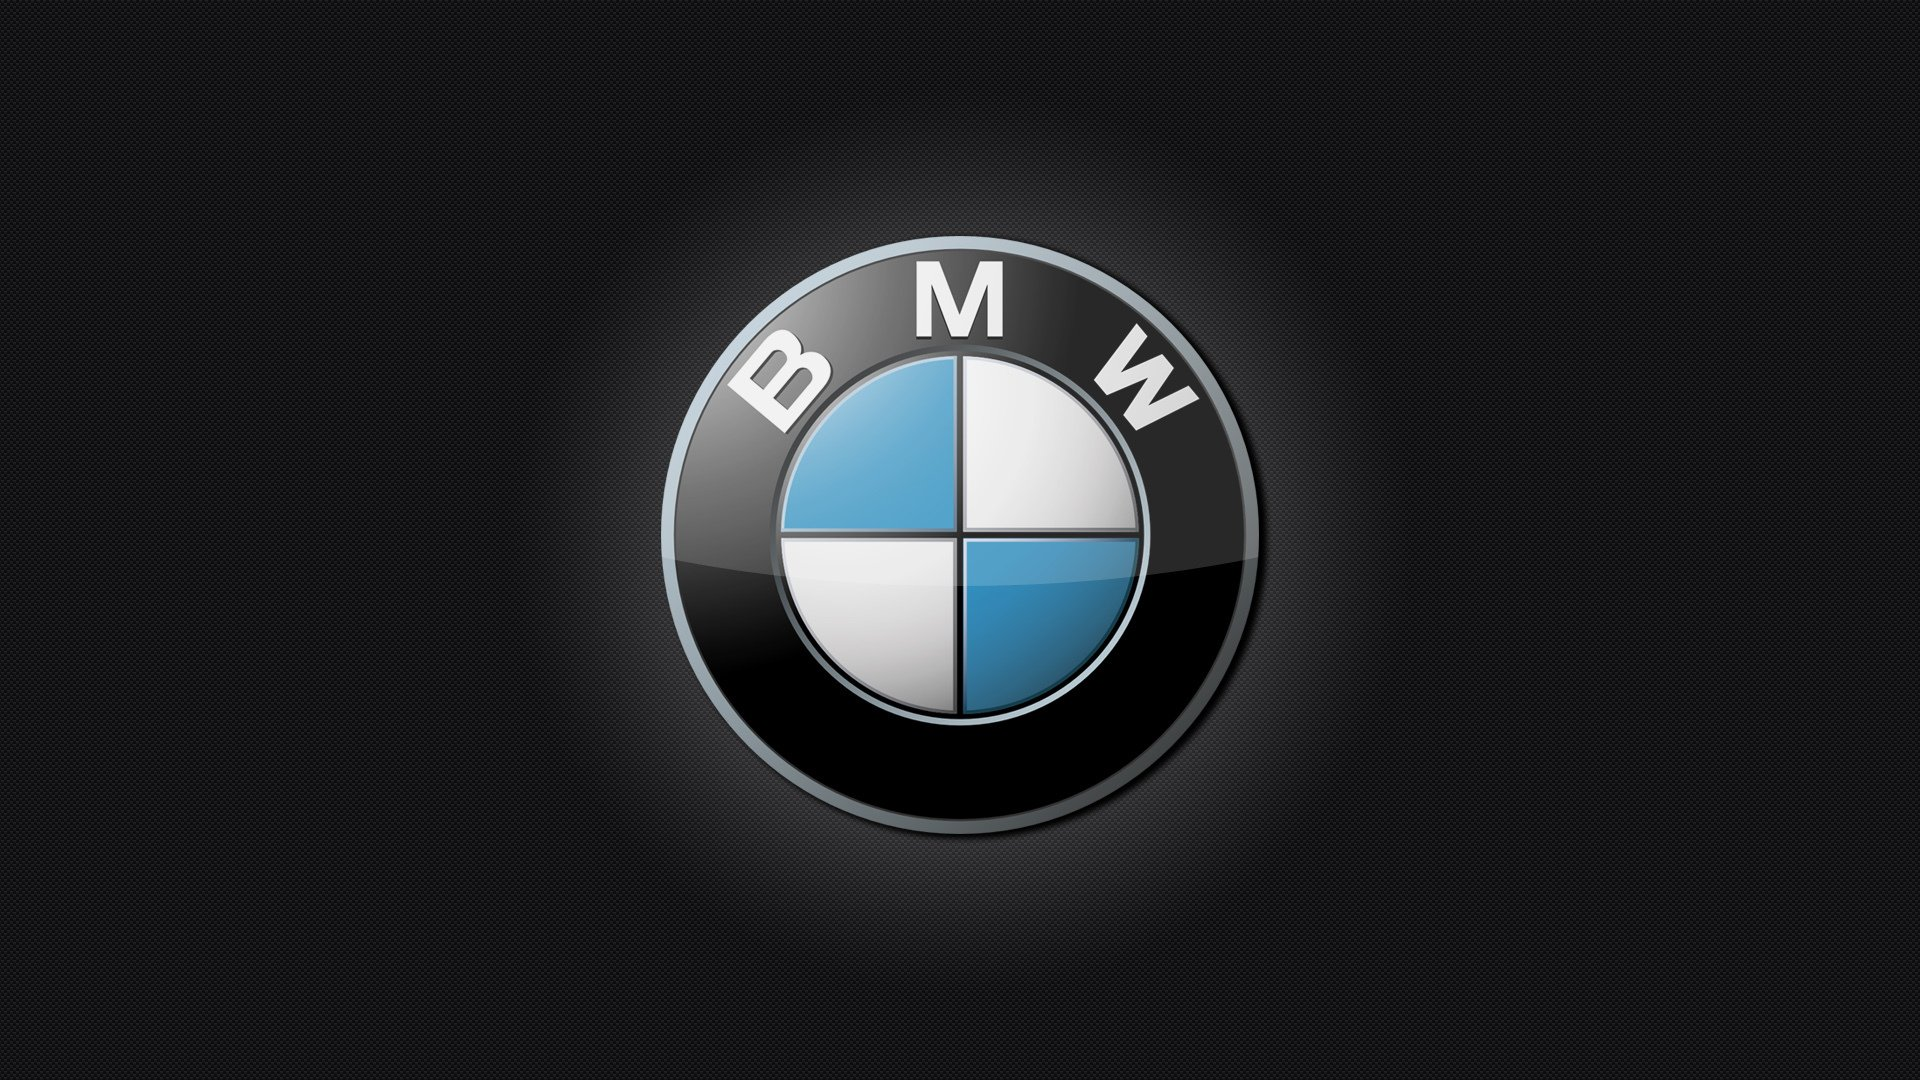 Bmw Picture Is Cool Wallpapers